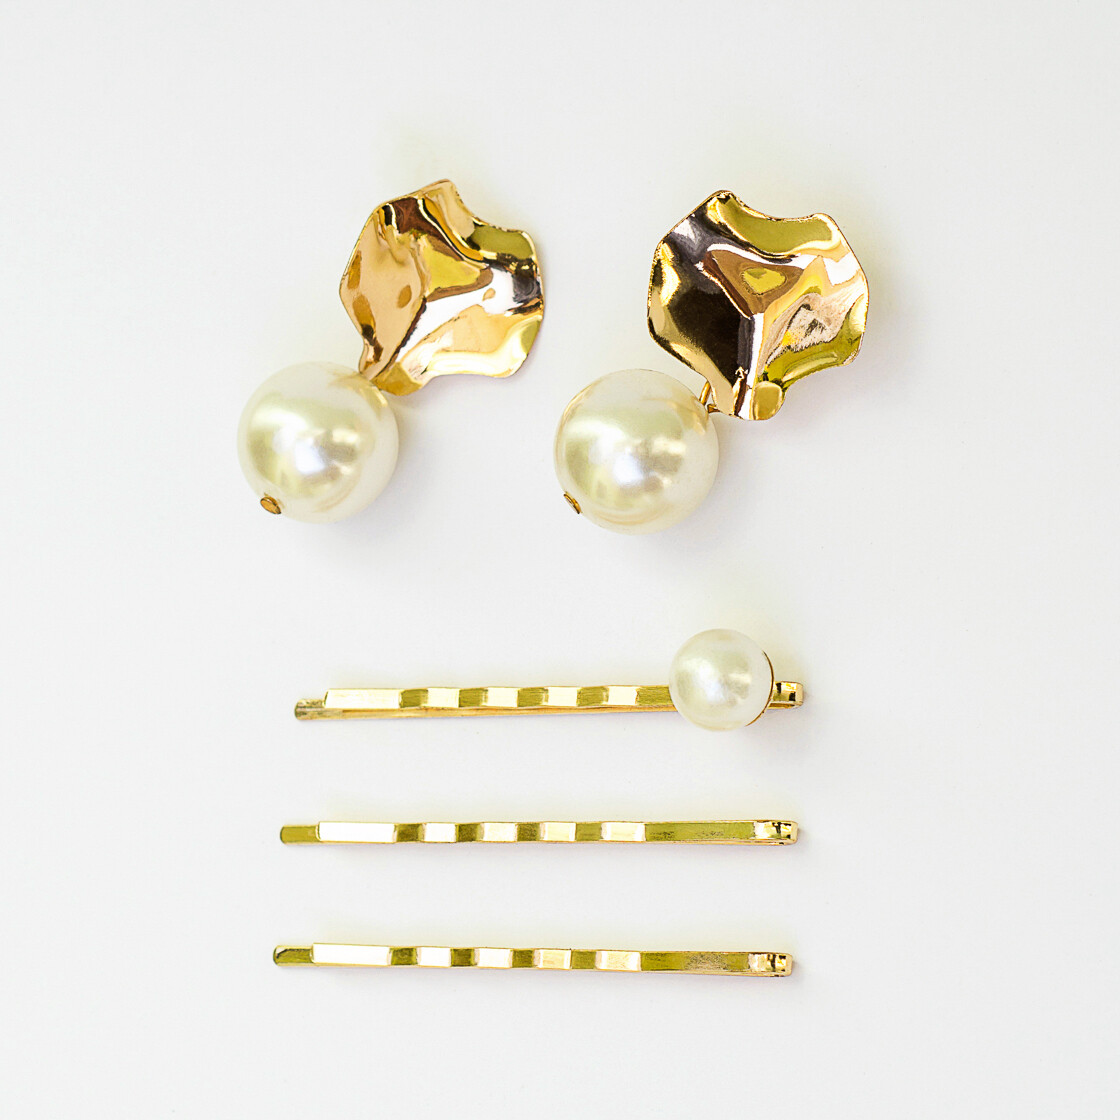 Juego de aretes y broche Gold - BLACKDOLL ACCESSORIES